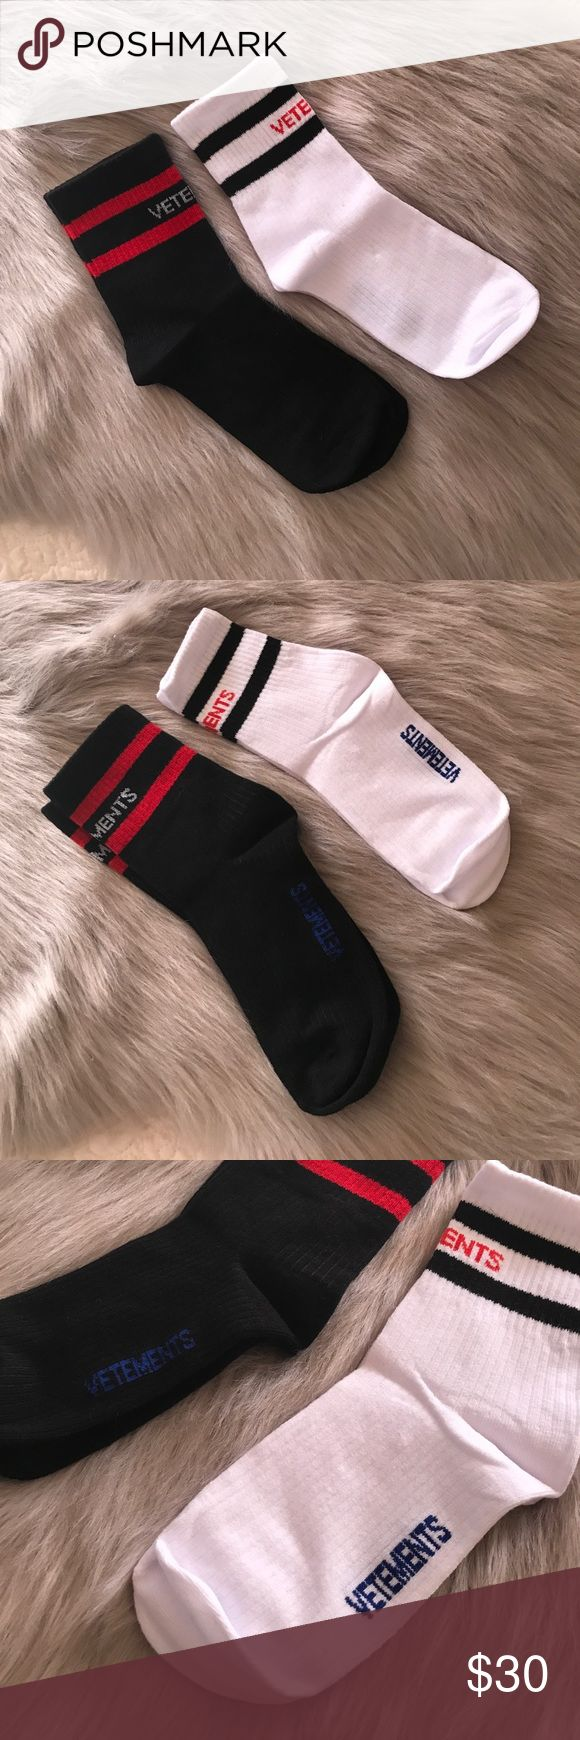 Vetements Striped Cotten Ankle Socks Combo Vetements Striped Cotten Ankle Socks Combo  -Size Small** -Brand New!  -Both for price of 1! -Ship from Los Angeles, CA.  -Ship same or next business day! -NO pricing discussions on comments below, ONLY submit offer!  Tags Supreme Box Logo Shirt Hoodie Bape Chanel Louis Vuitton Vintage Tee Shirt  LV Wallet Card Style Accessories Gucci Snake Belt Travel Passport Common Projects Goyard Duffle Bag Backpack Jordan Nike Yeezy Gosha Vetements Underwear…